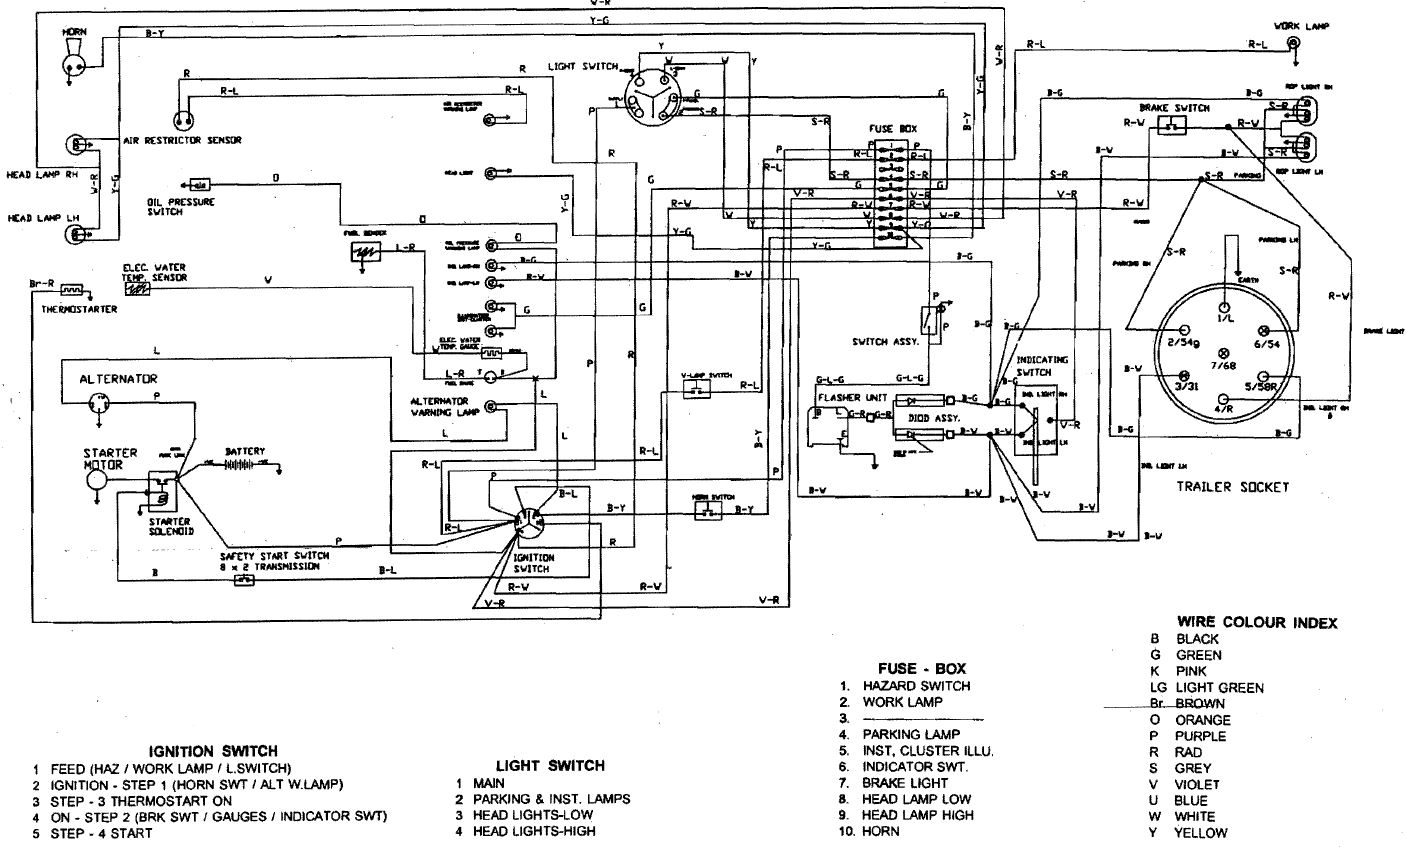 20158463319_b82d524c3d_o ignition switch wiring diagram tractor ignition switch wiring diagram at edmiracle.co